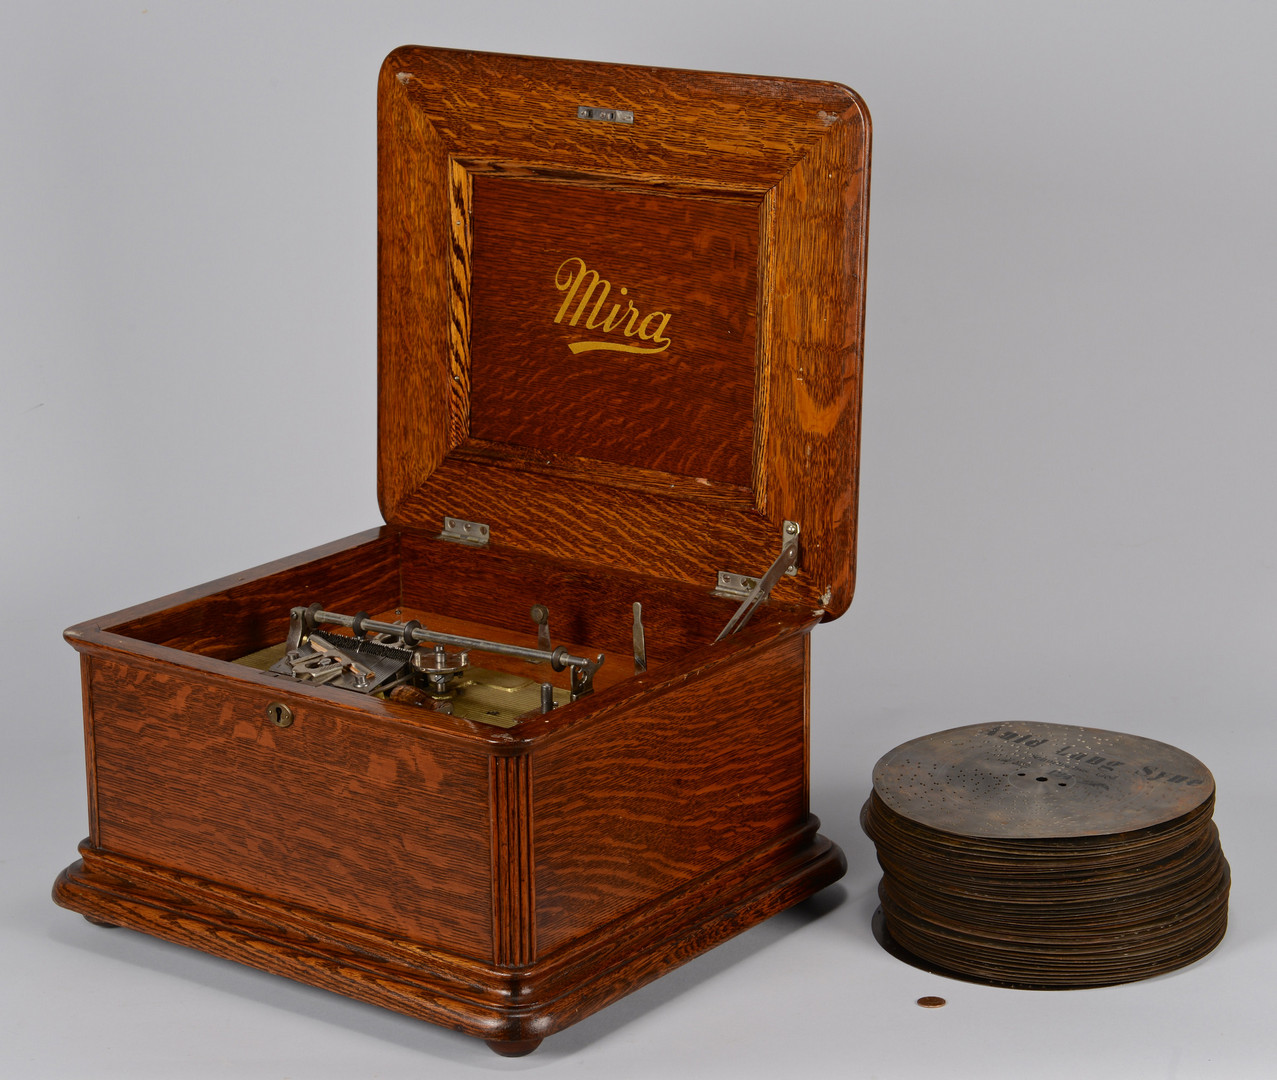 "Lot 645: Mira Disc Music Box, 9 1/2"" discs"